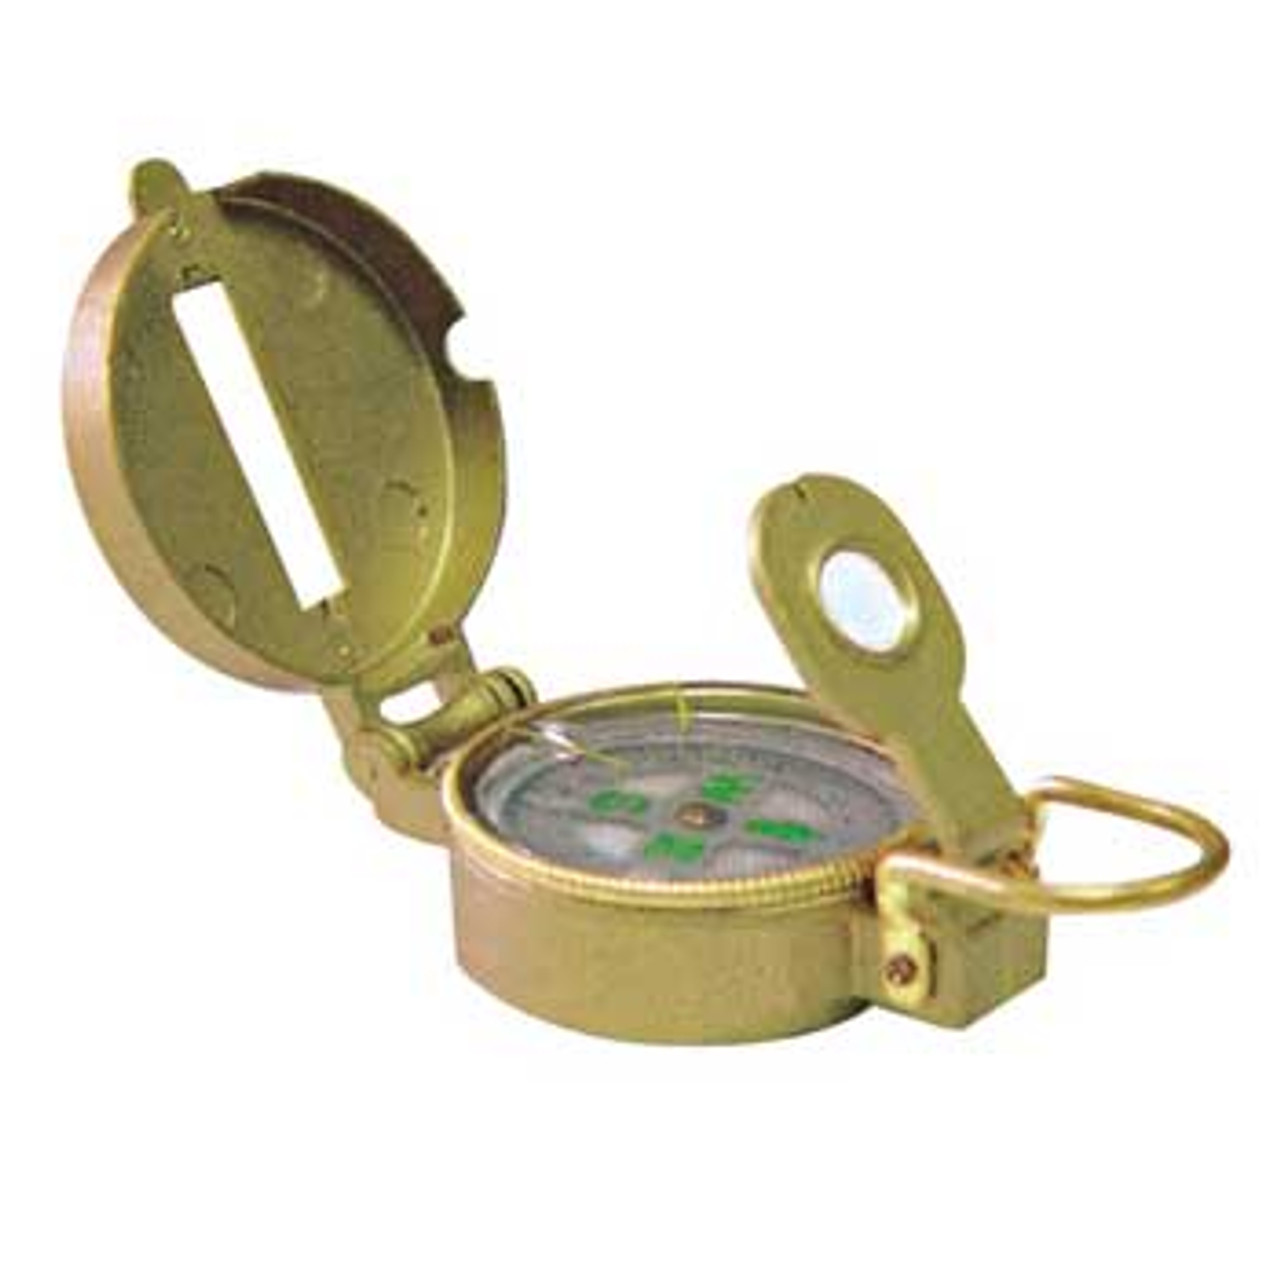 Engineering Lensatic Compass, Metal Case